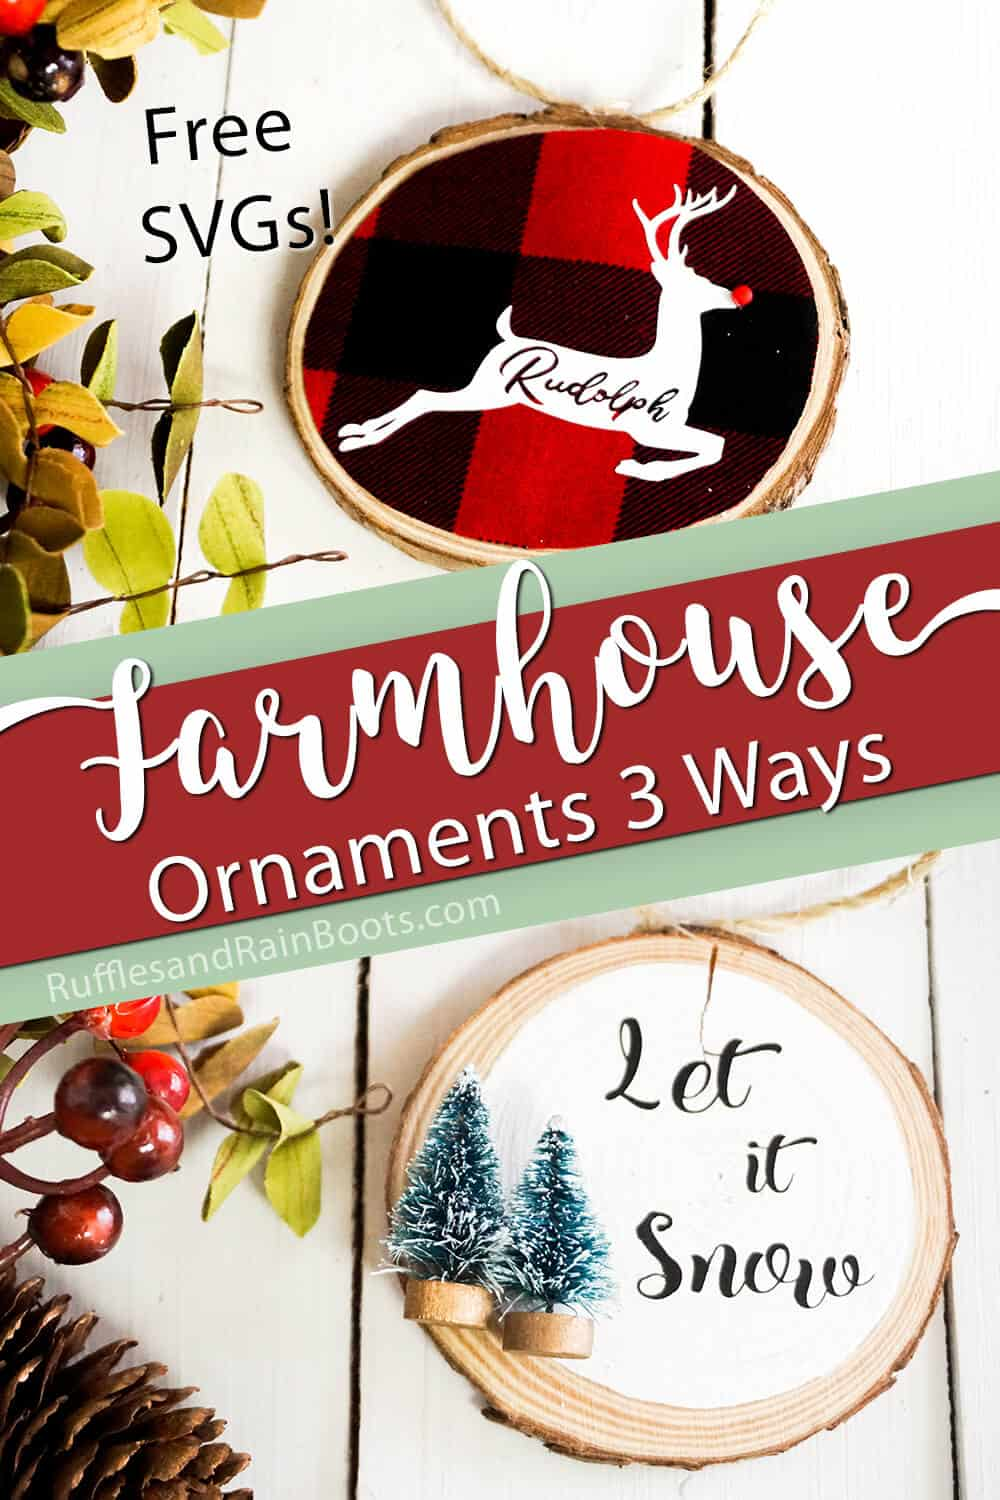 photo collage of wood chip ornaments made on the cricut with text which reads Free SVGs Farmhouse Ornaments 3 ways